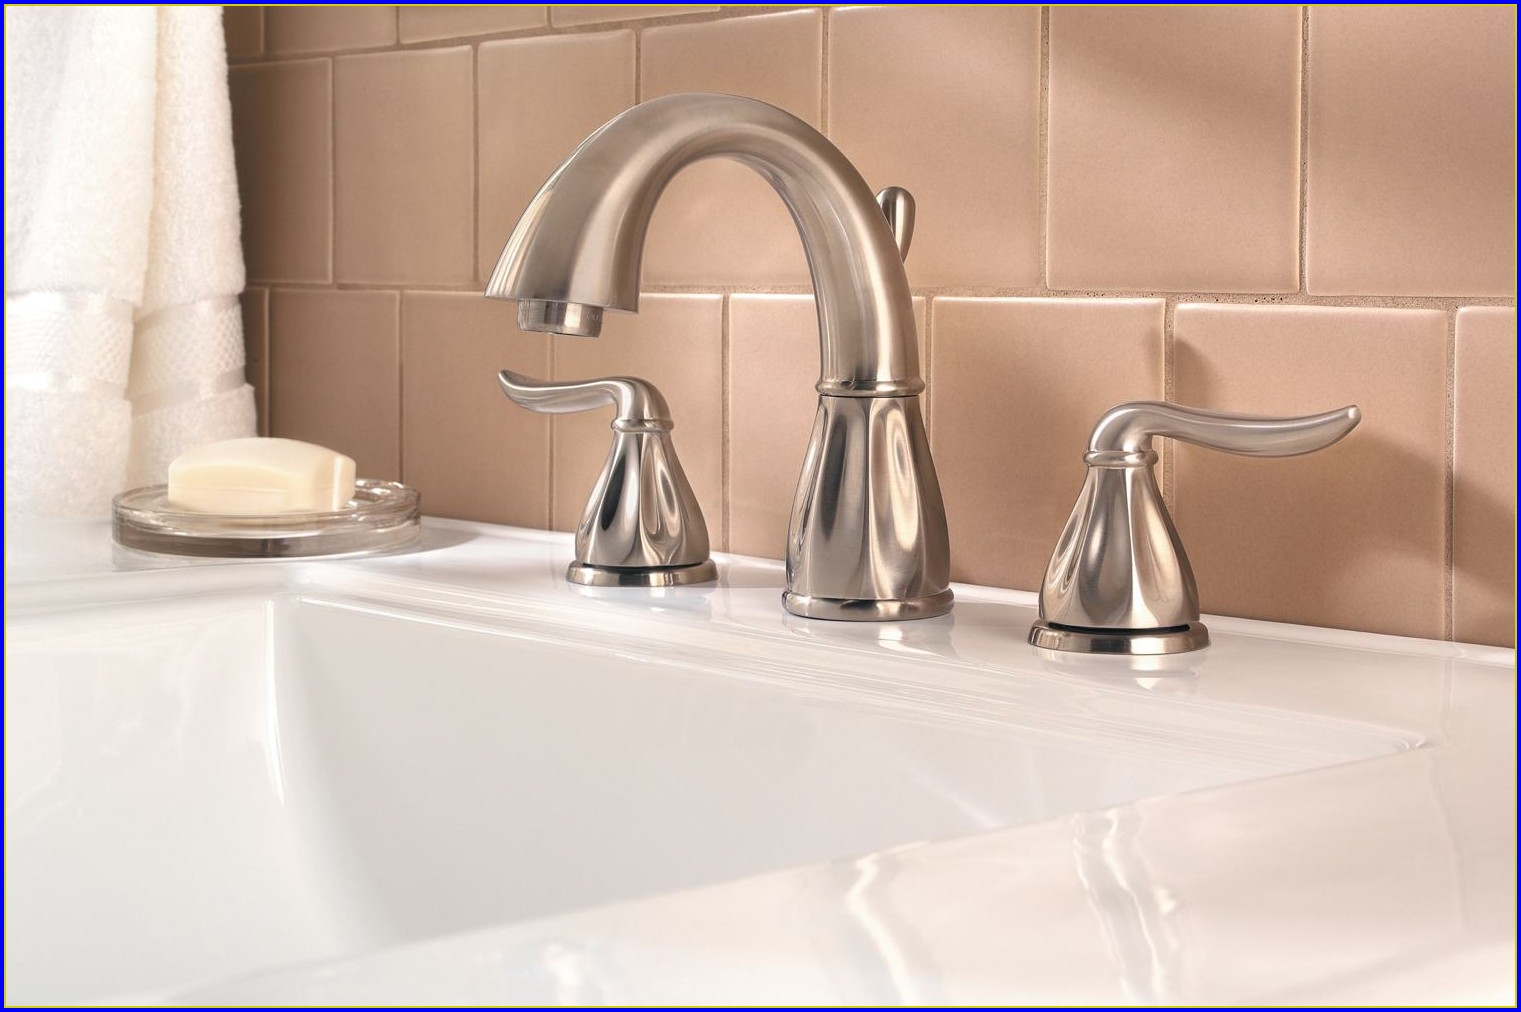 Pfister Bathroom Faucets Brushed Nickel